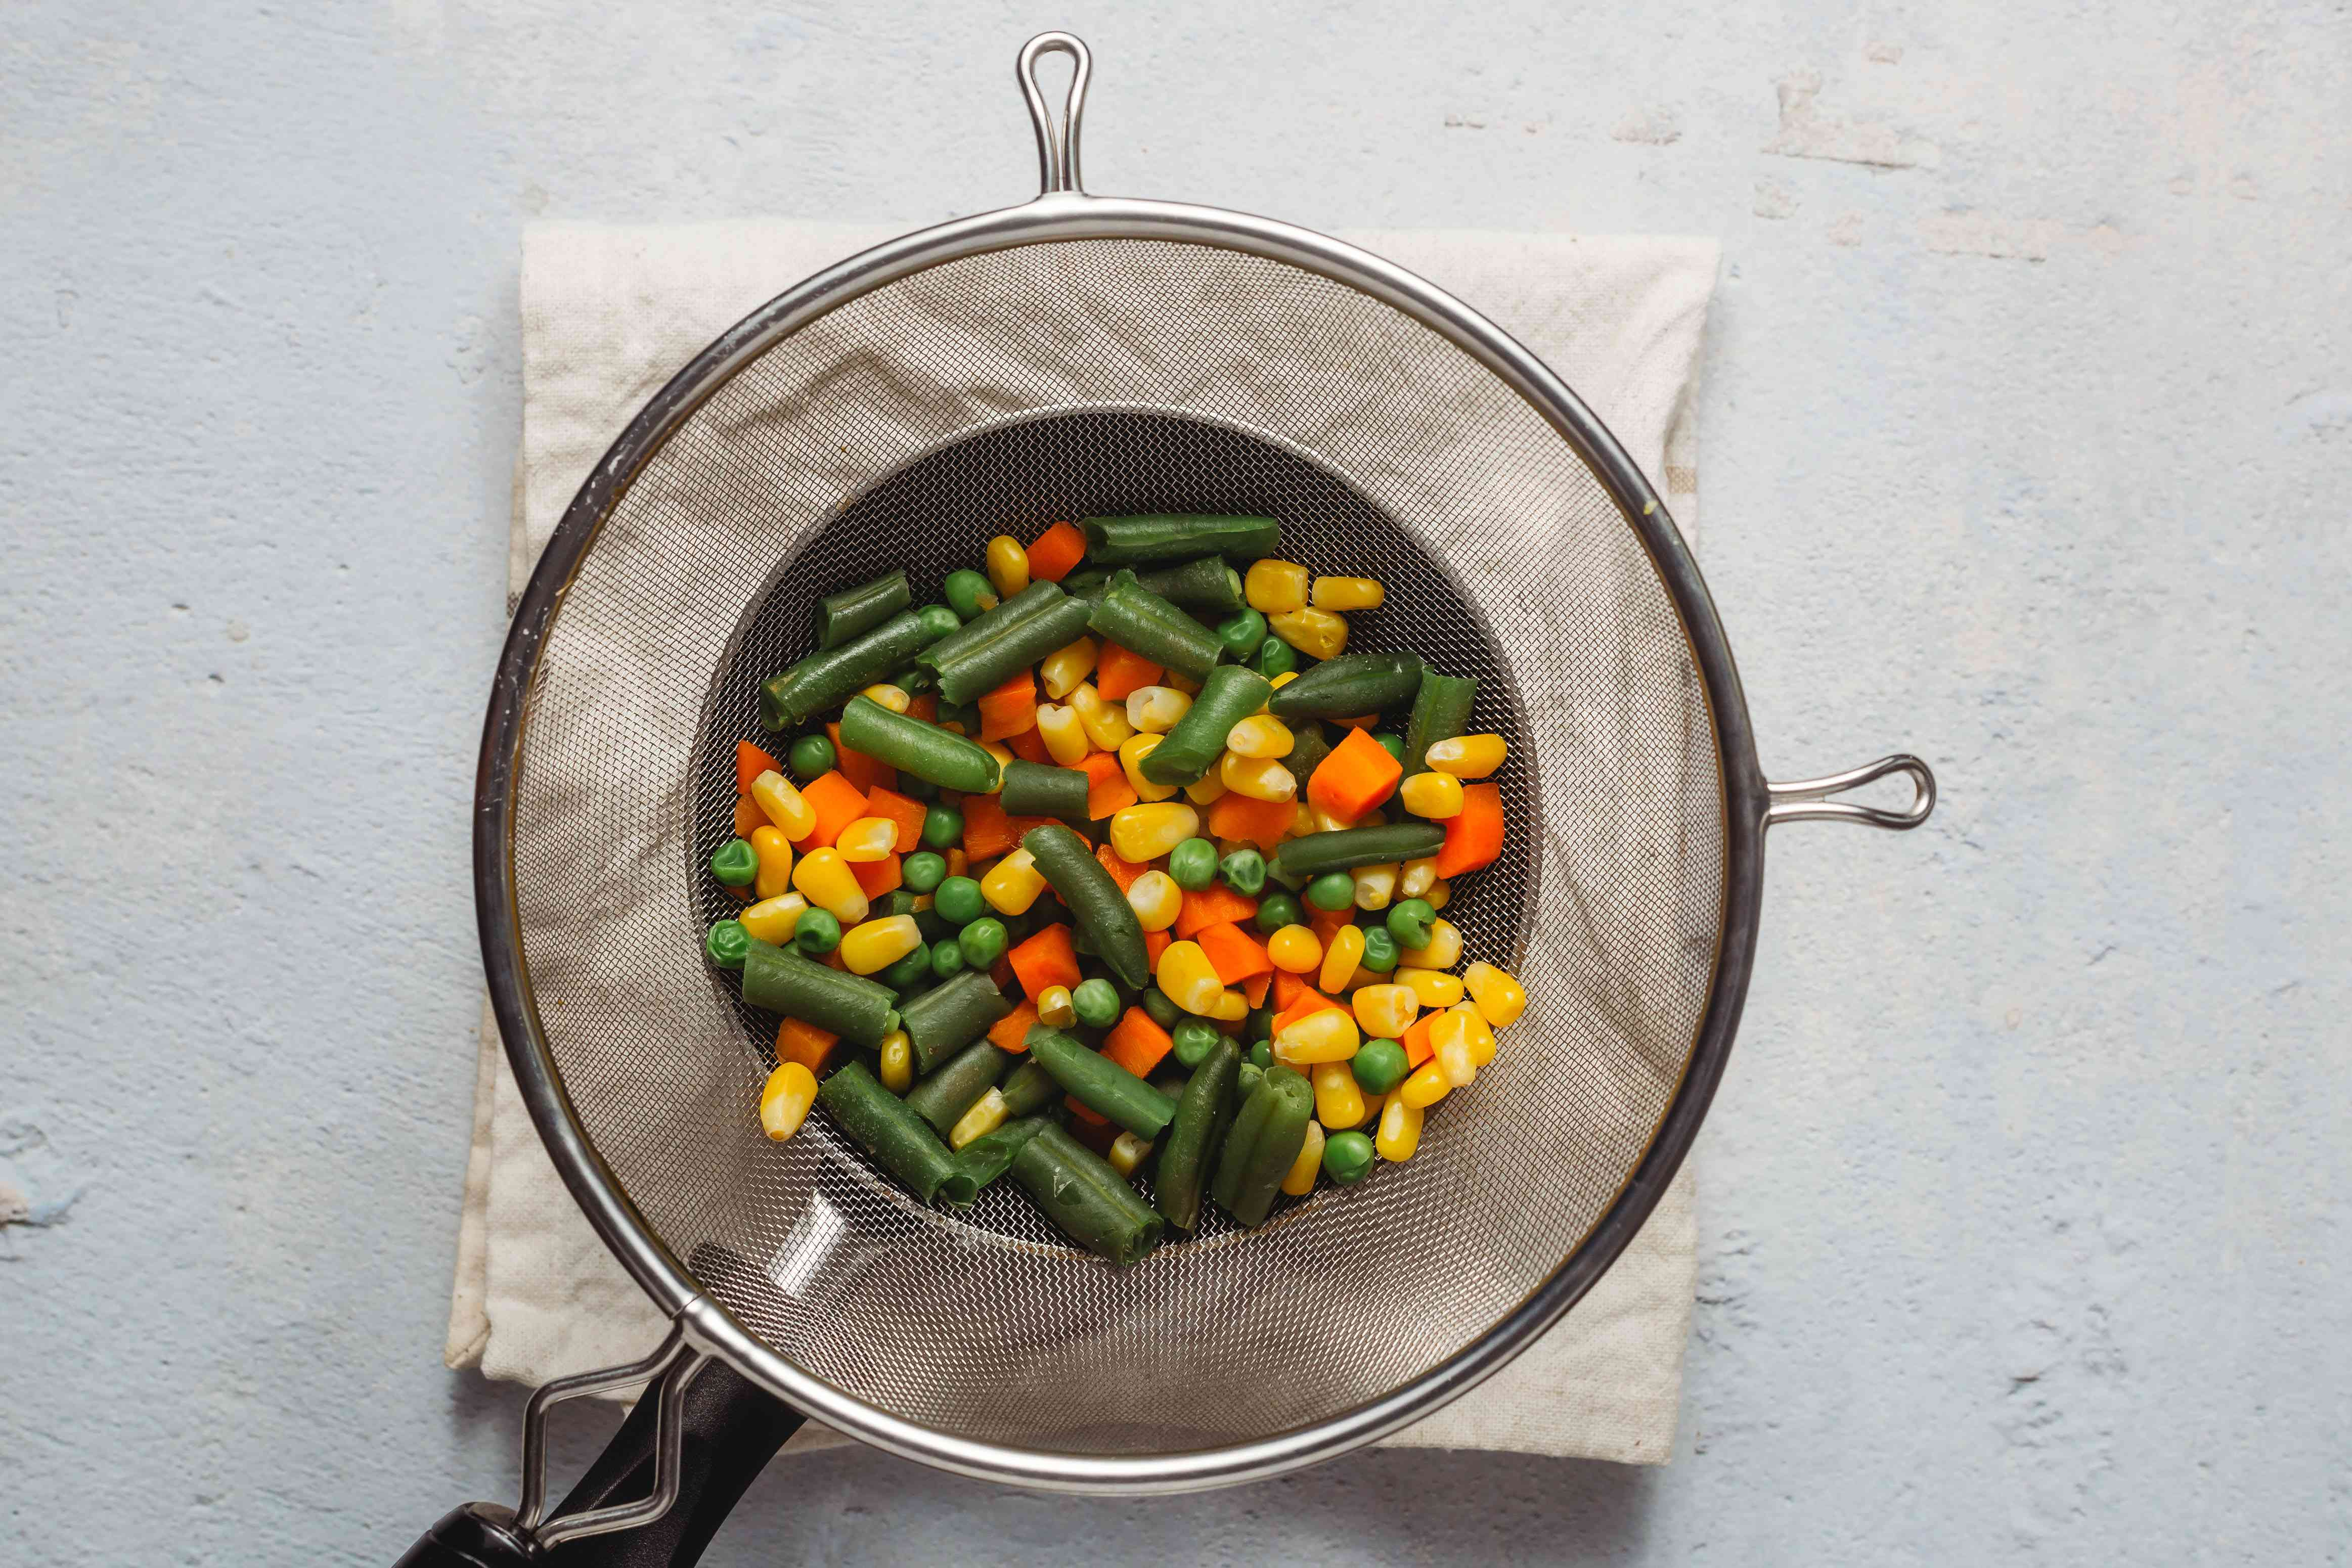 drained boiled vegetables